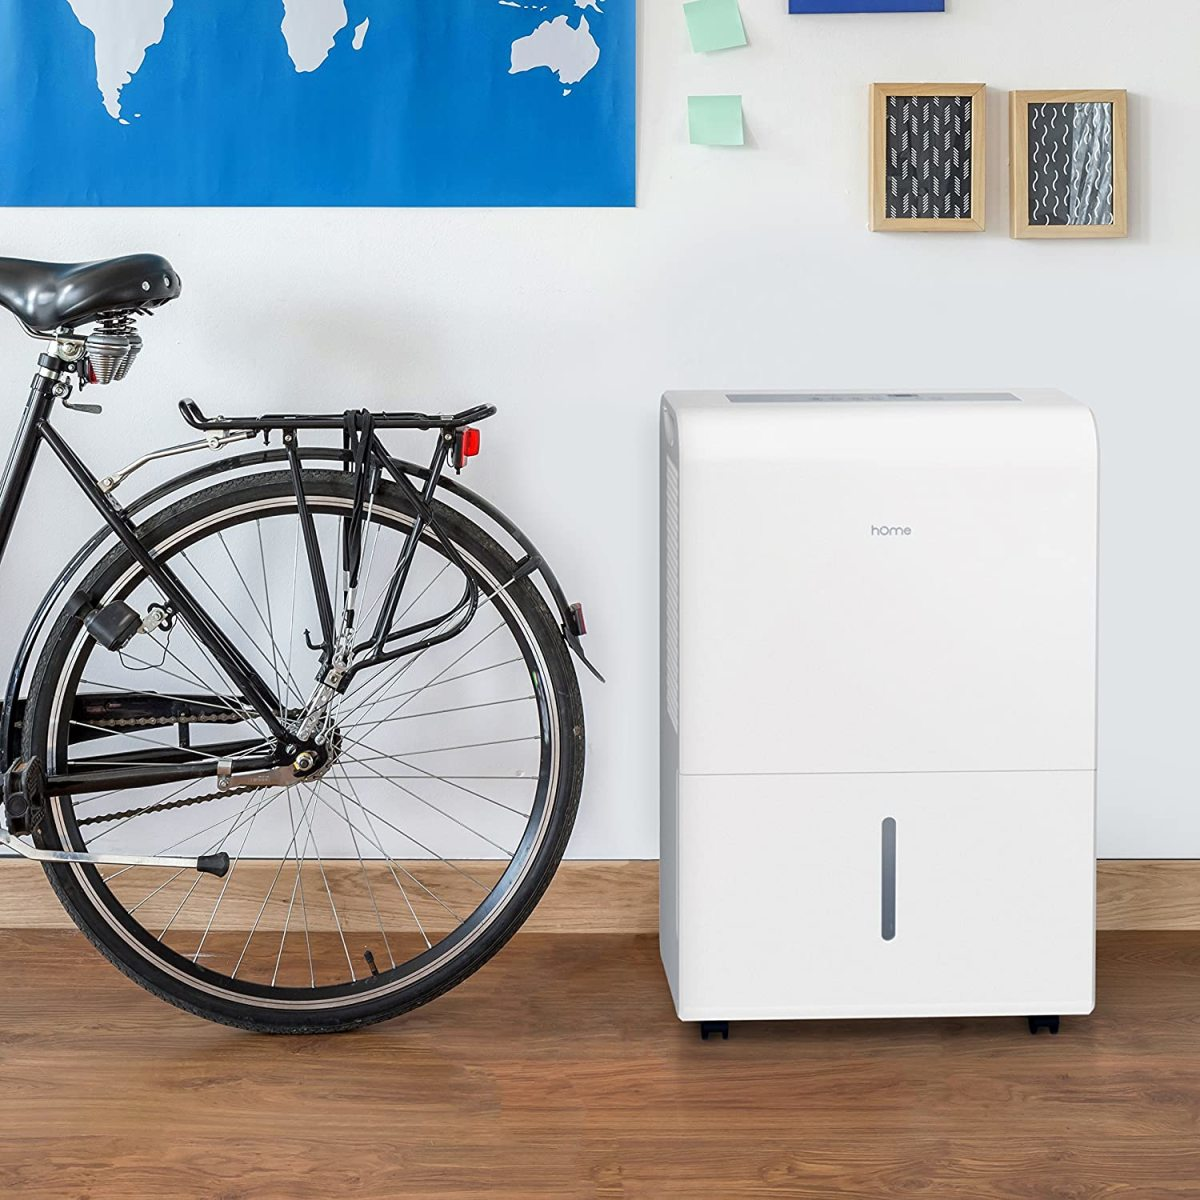 Homelabs 4,500 Sq. Ft Energy Star Dehumidifier Pros and Cons From an Owner